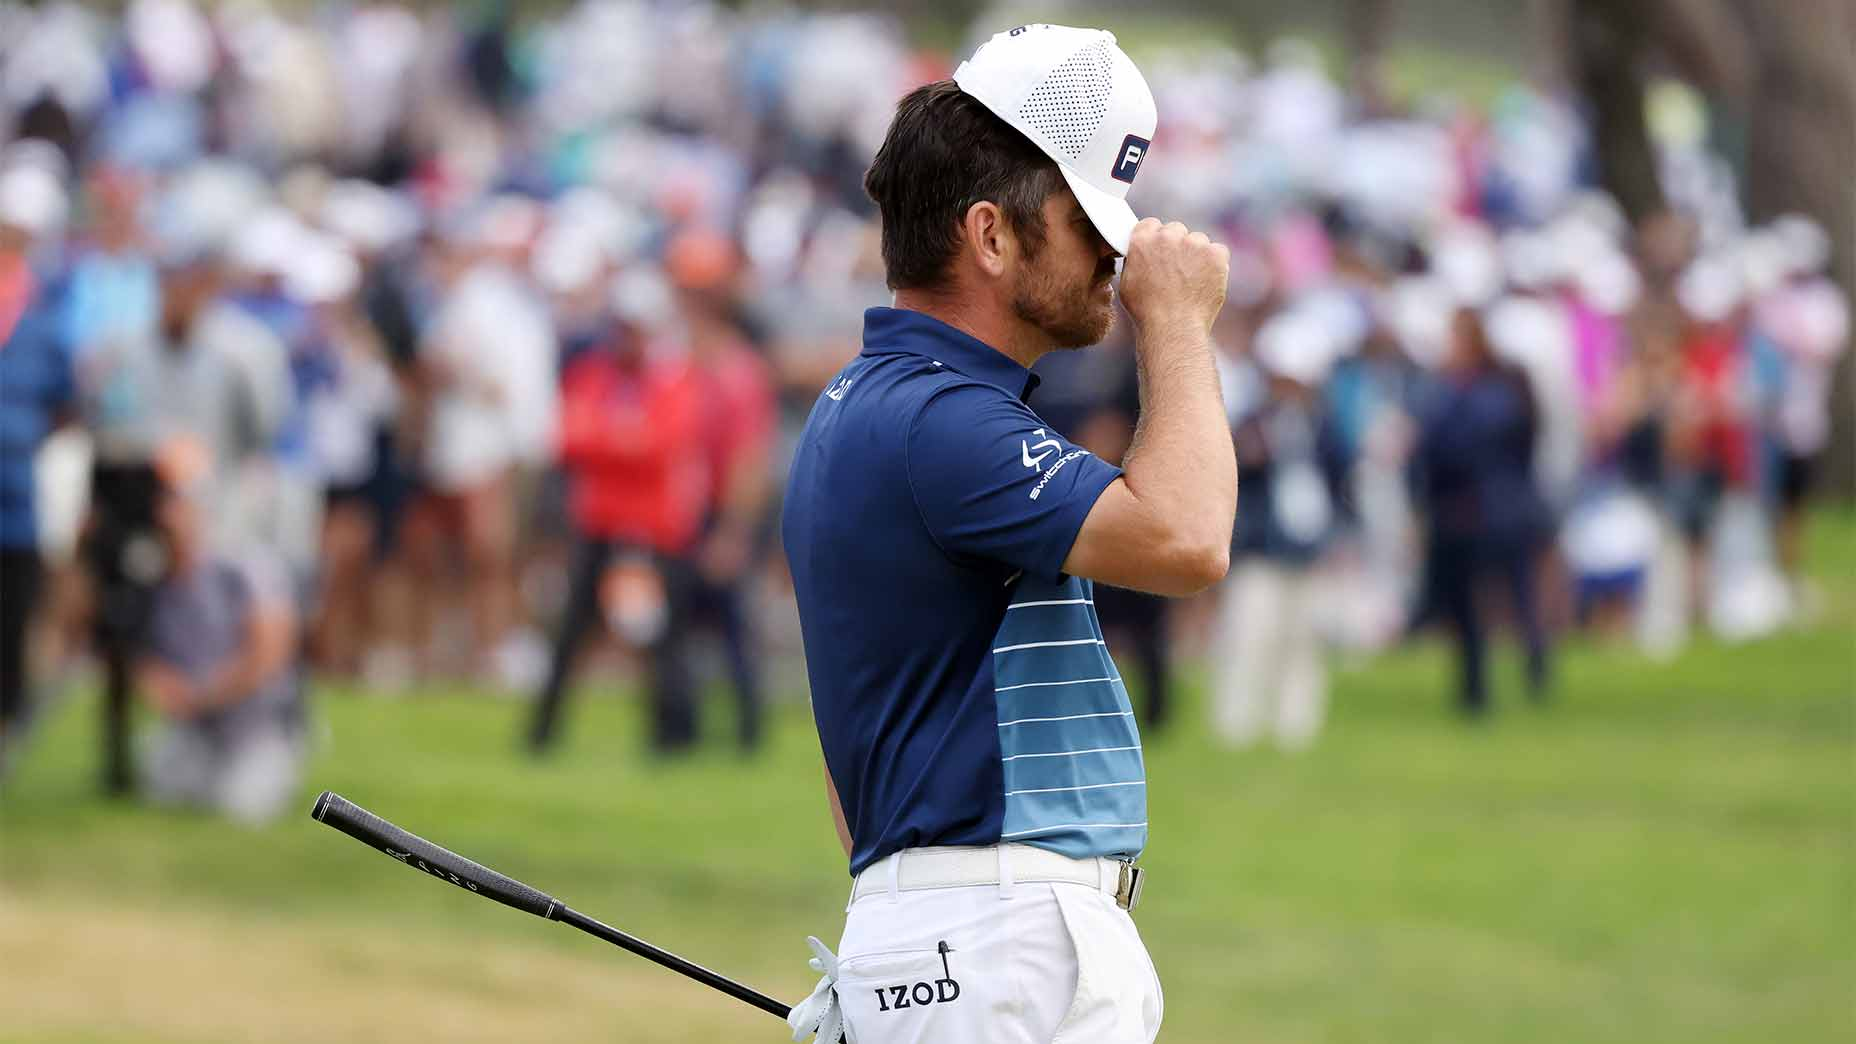 Louie Oosthuizen fixes his hat at the us open.